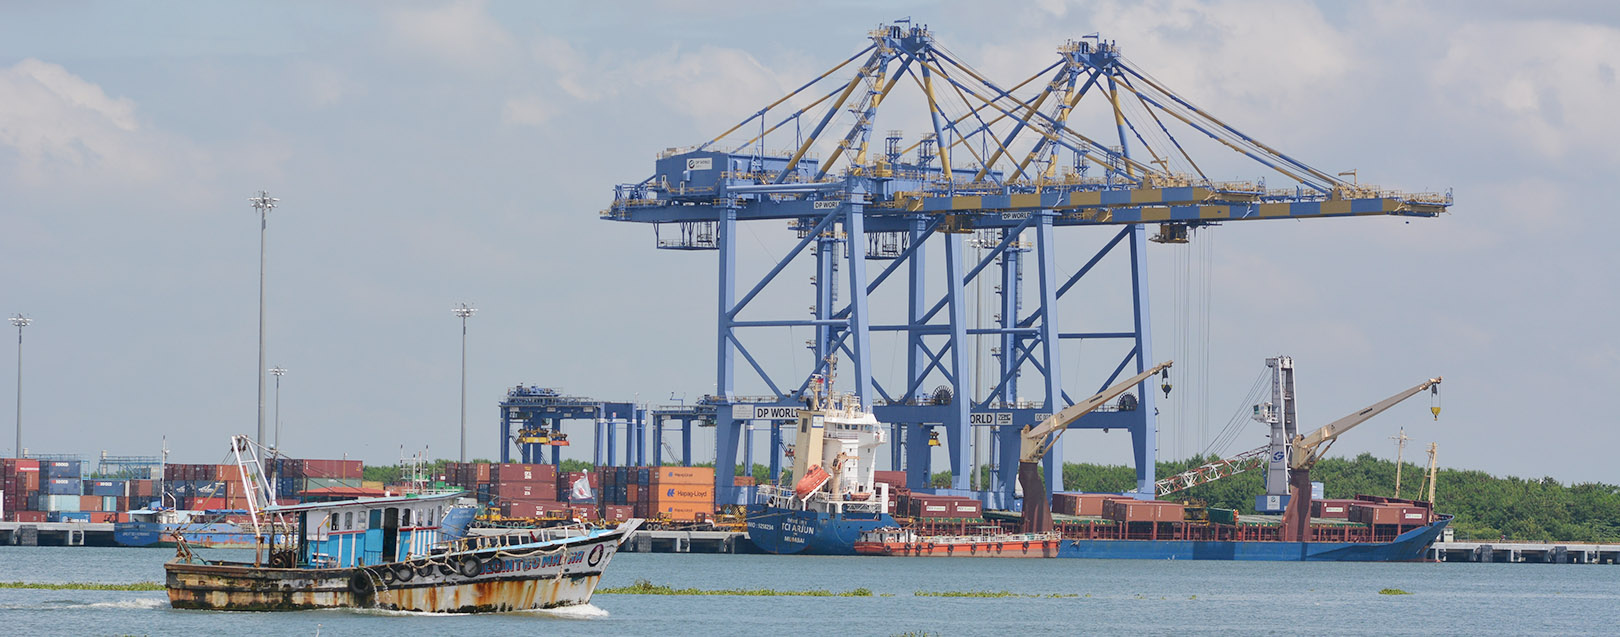 Proposed Multi-Modal Terminal at Haldia Holds Huge Cargo Potential